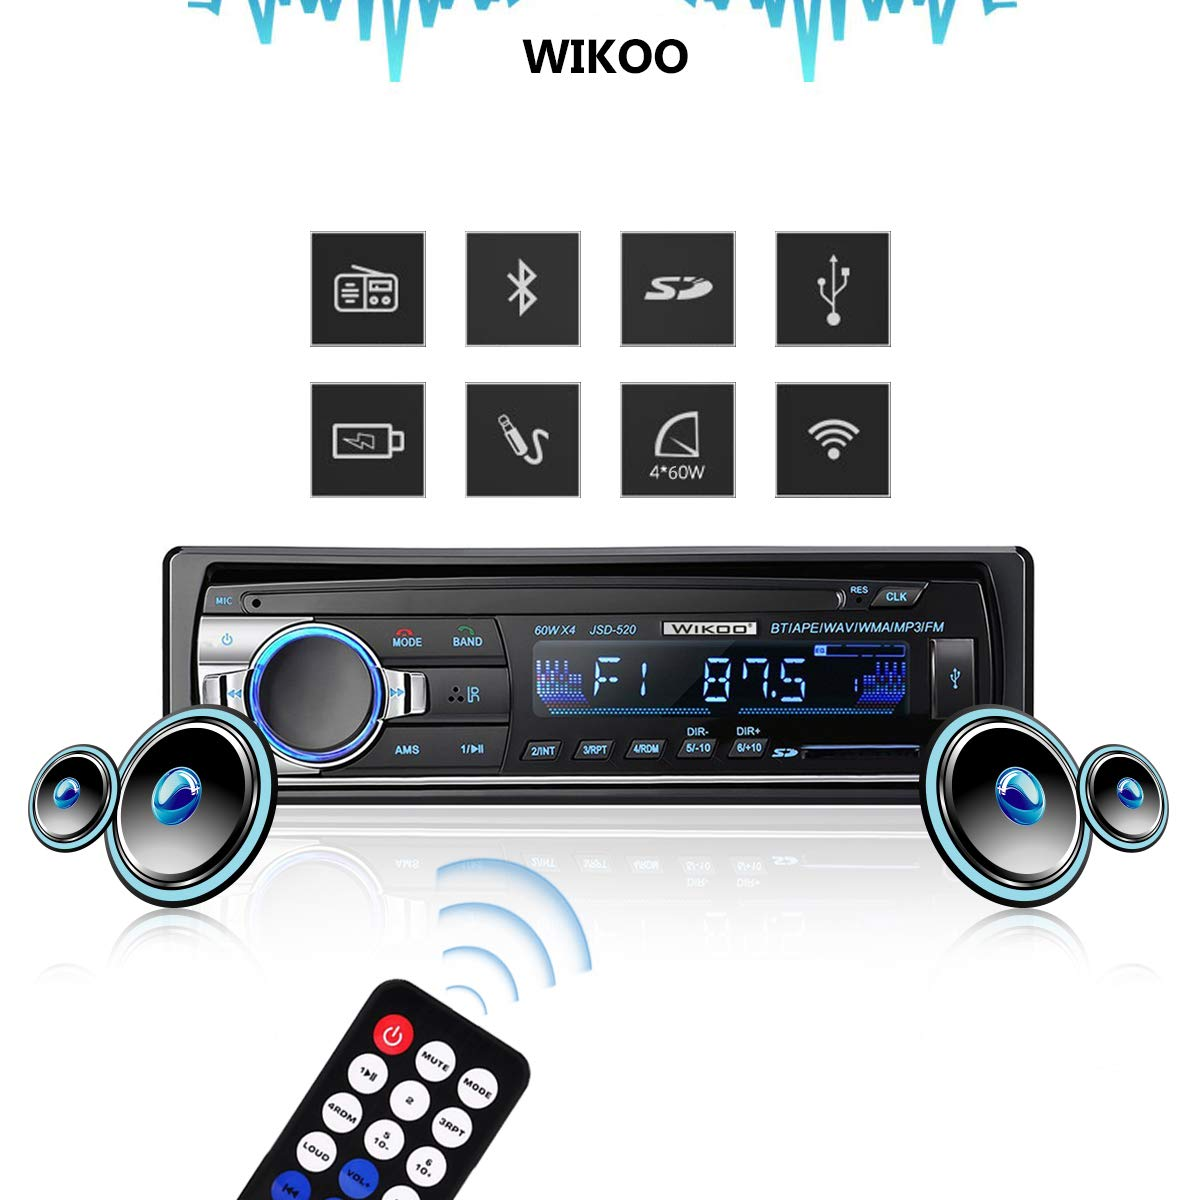 Digital Car Stereo - Wikoo Single-Din Bluetooth Car Stereo In Dash with Remote Control - Receivers USB/SD/Audio - MP3 Player/FM Radio, Supports Hands Free Calling